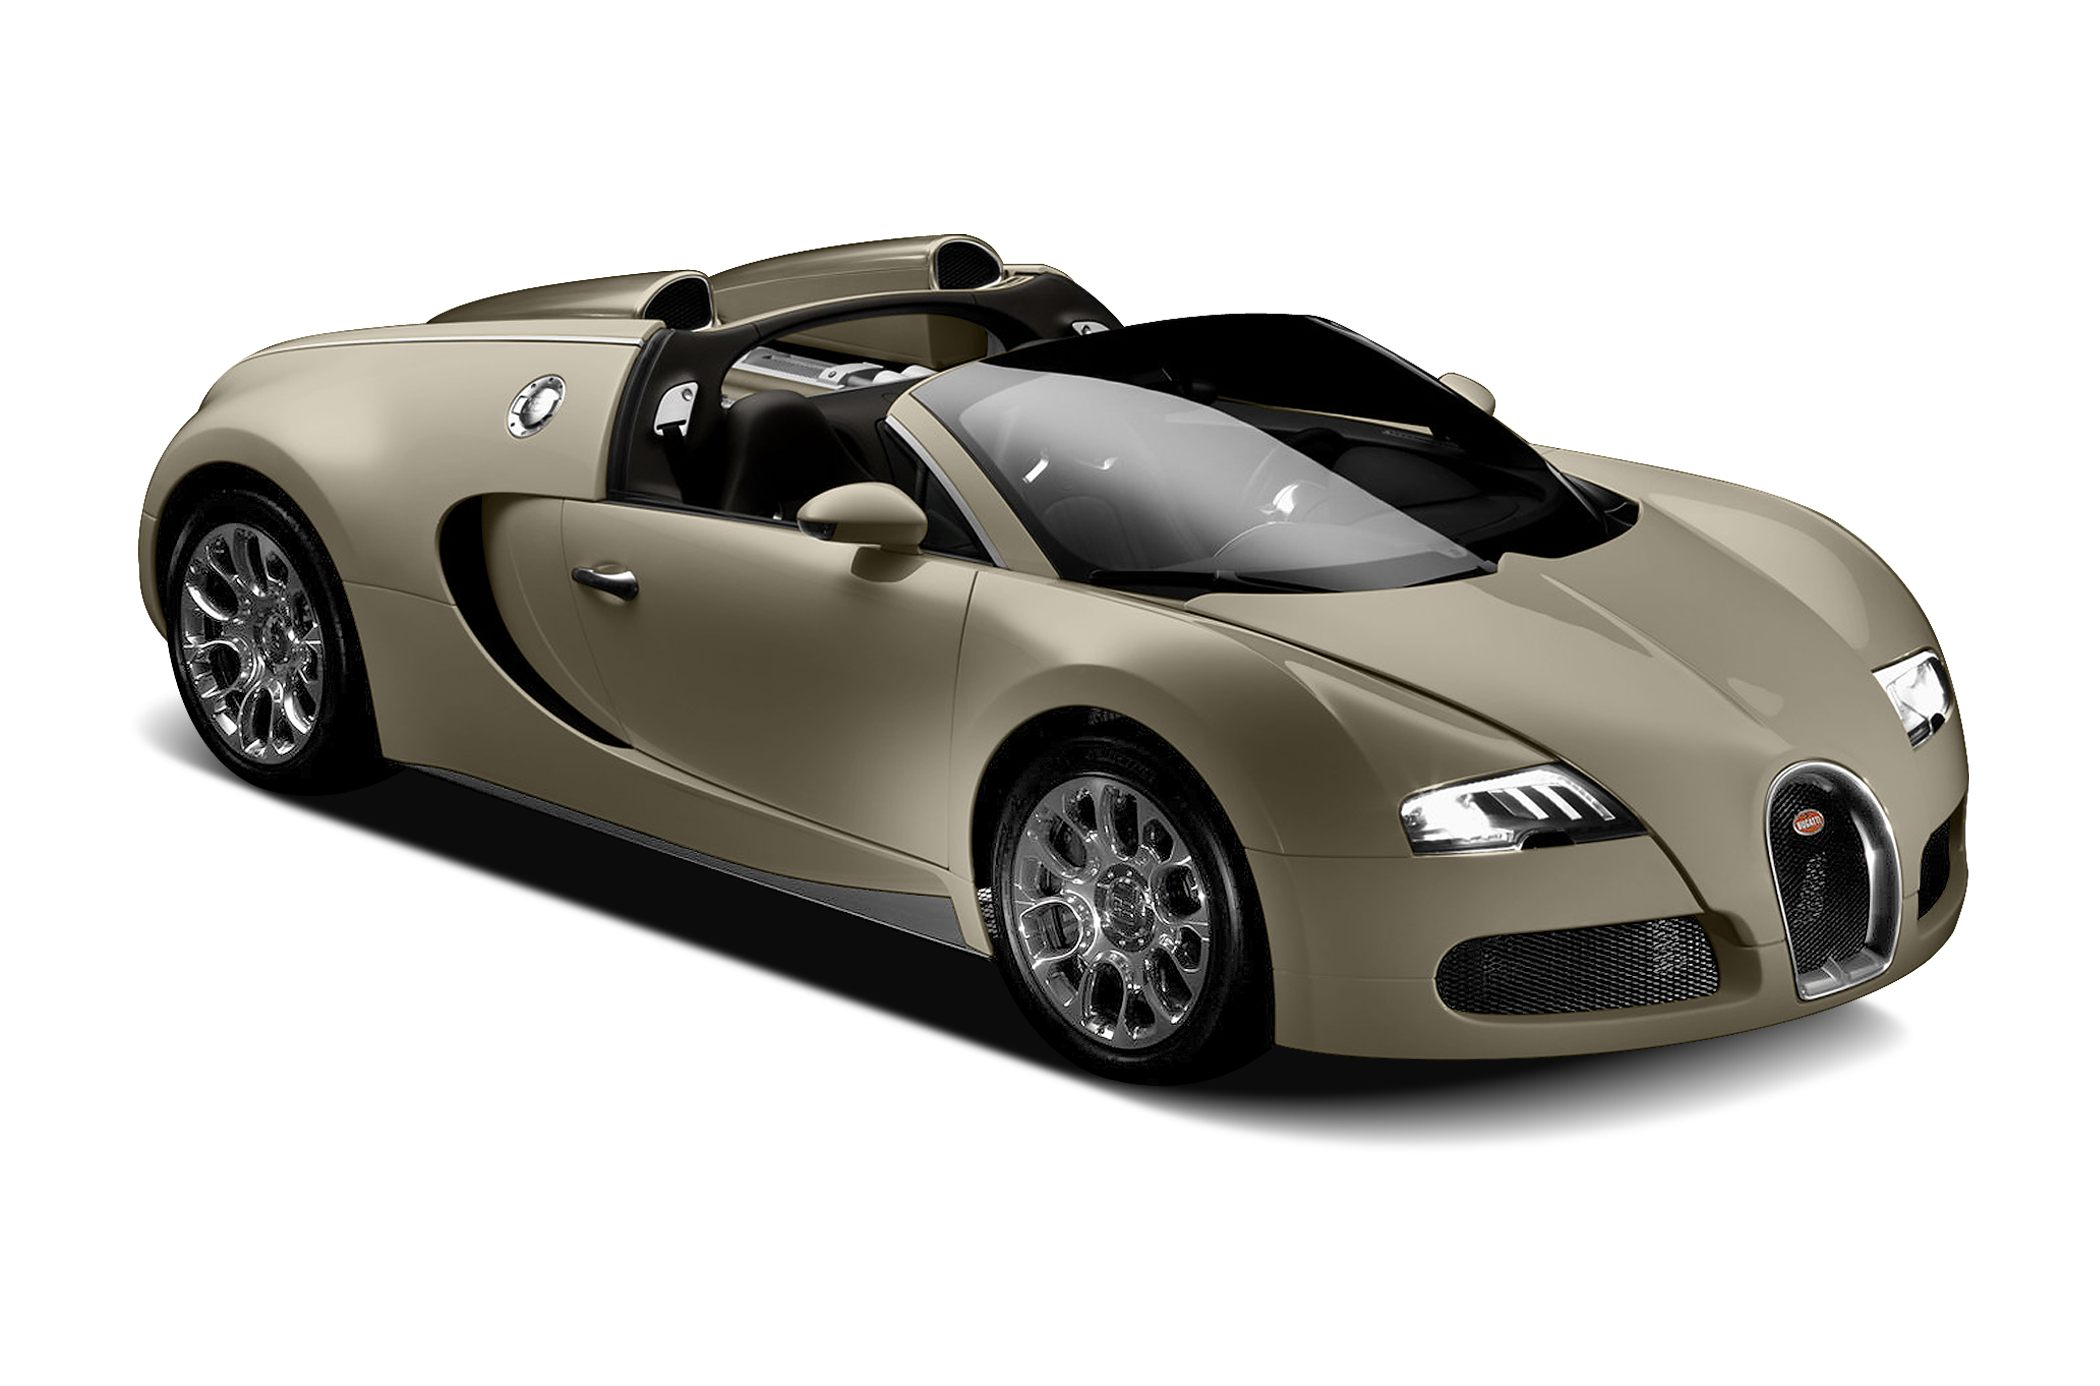 USB90BGC012A0101 Exciting Bugatti Veyron Cost for Oil Change Cars Trend